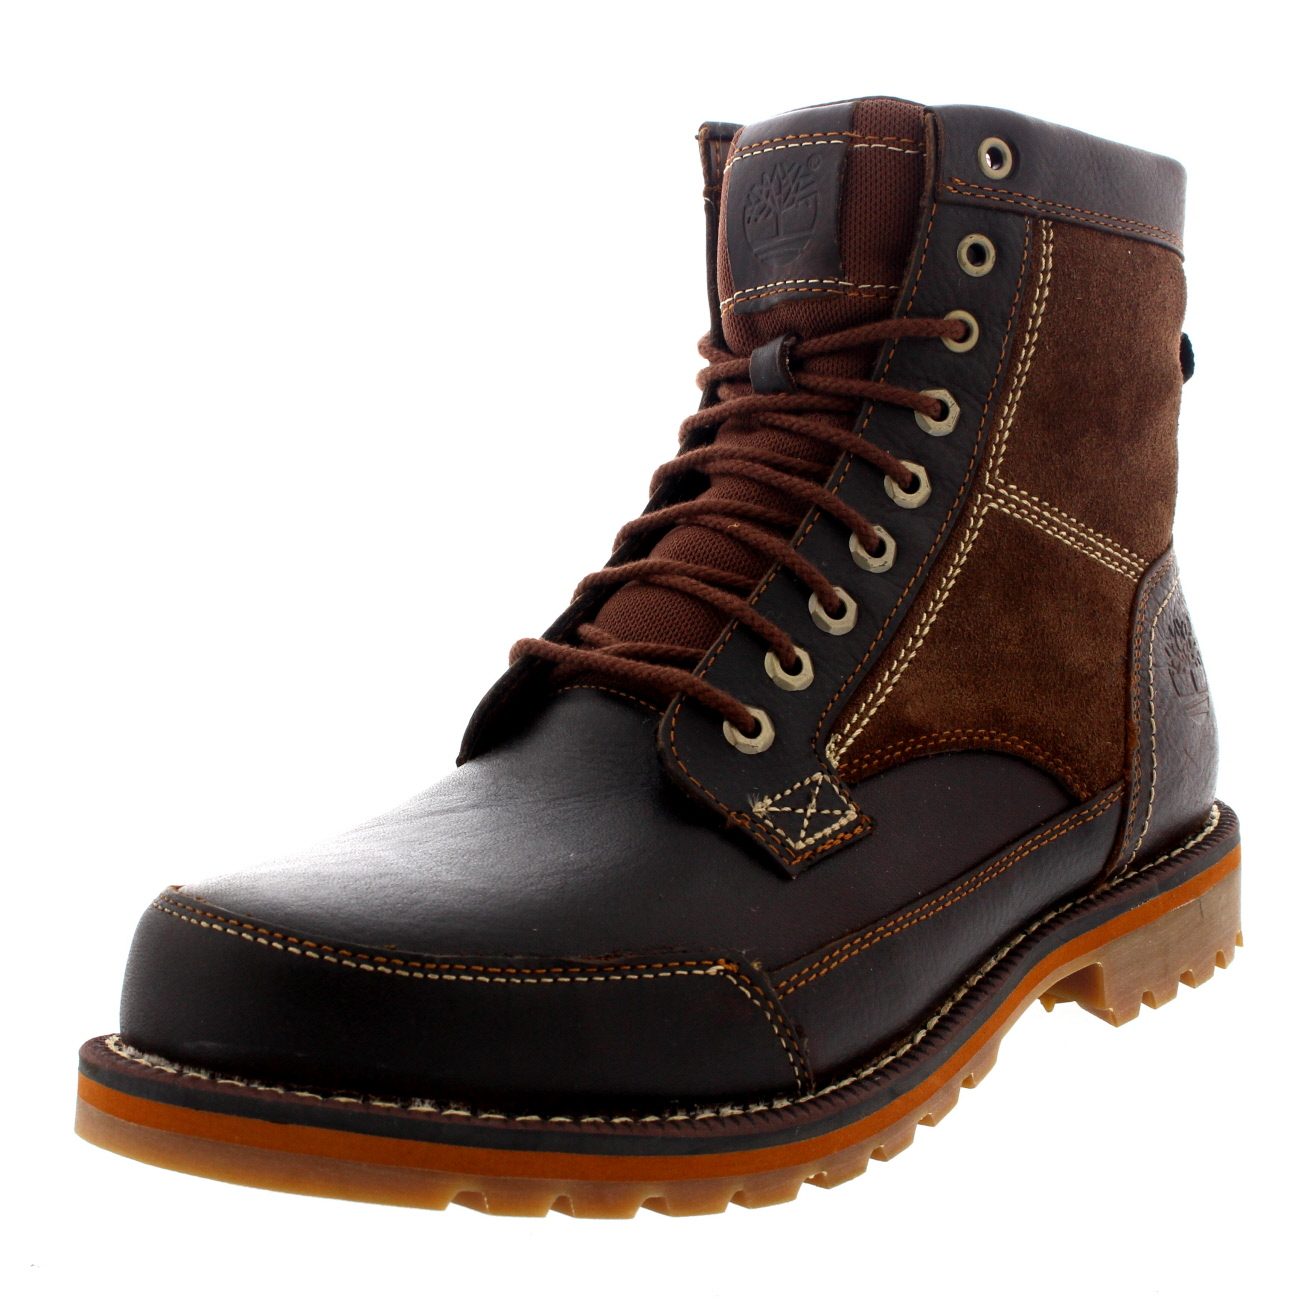 Compare Timberland Bradstreet Chukka Men products and find the best price. Buy online at the best webshops. collection online now!